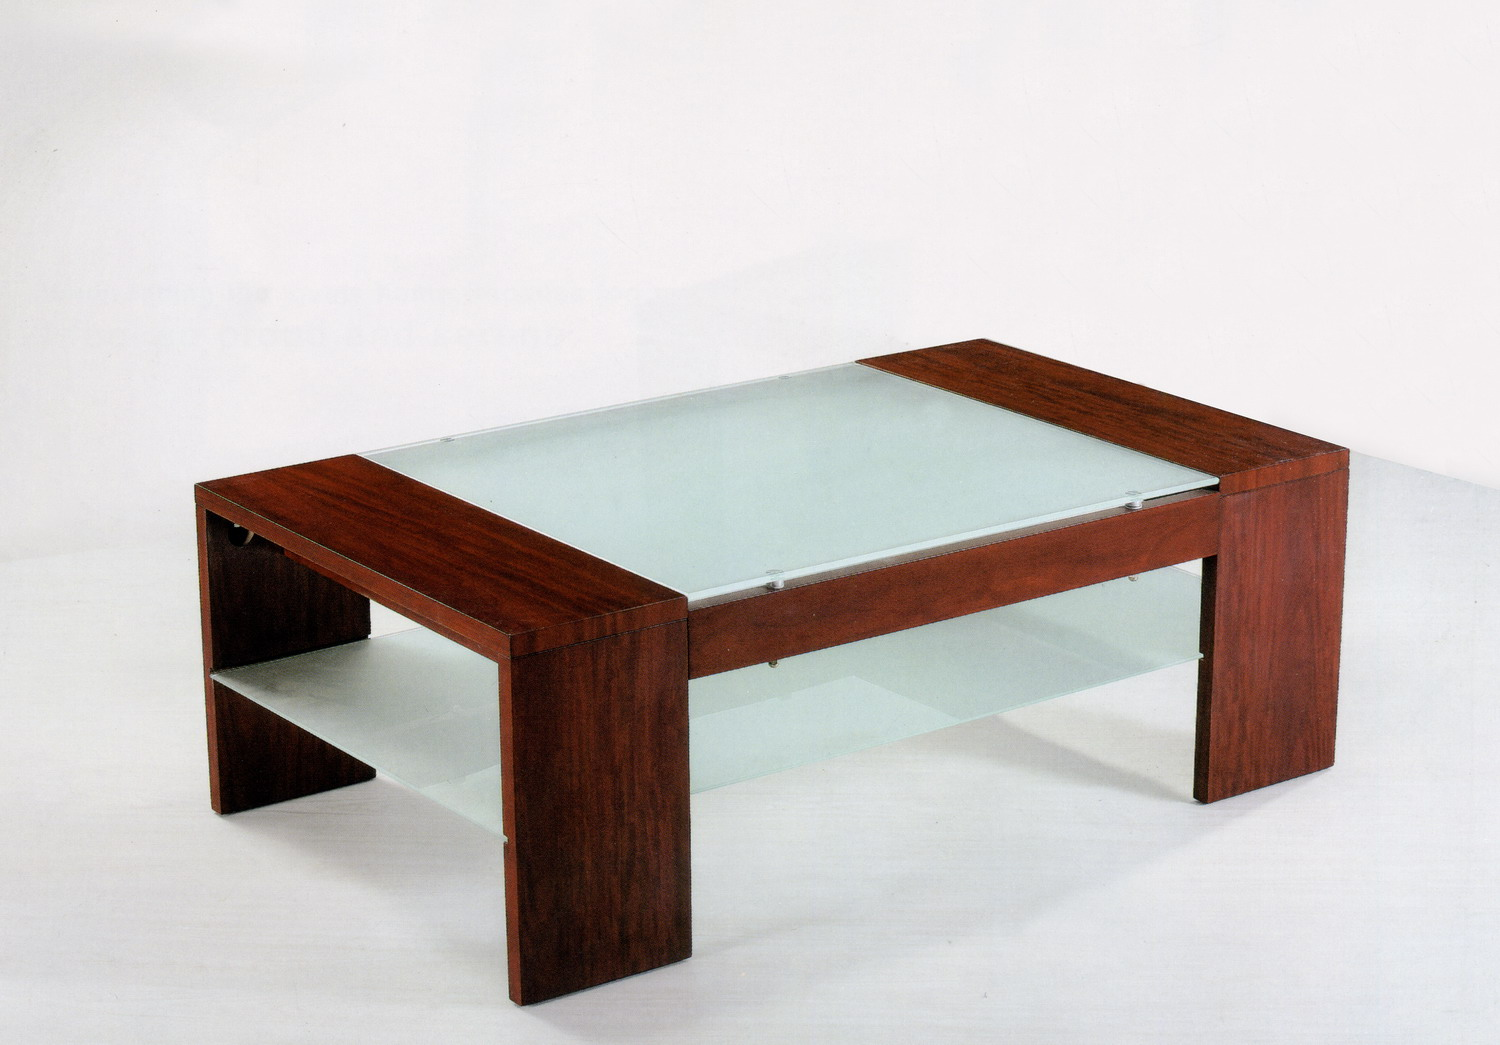 wood-and-glass-coffee-tables-glass-and-wood-will-bring-you-an-atmosphere-of-calmness-and-control-stained-finishing (Image 4 of 10)